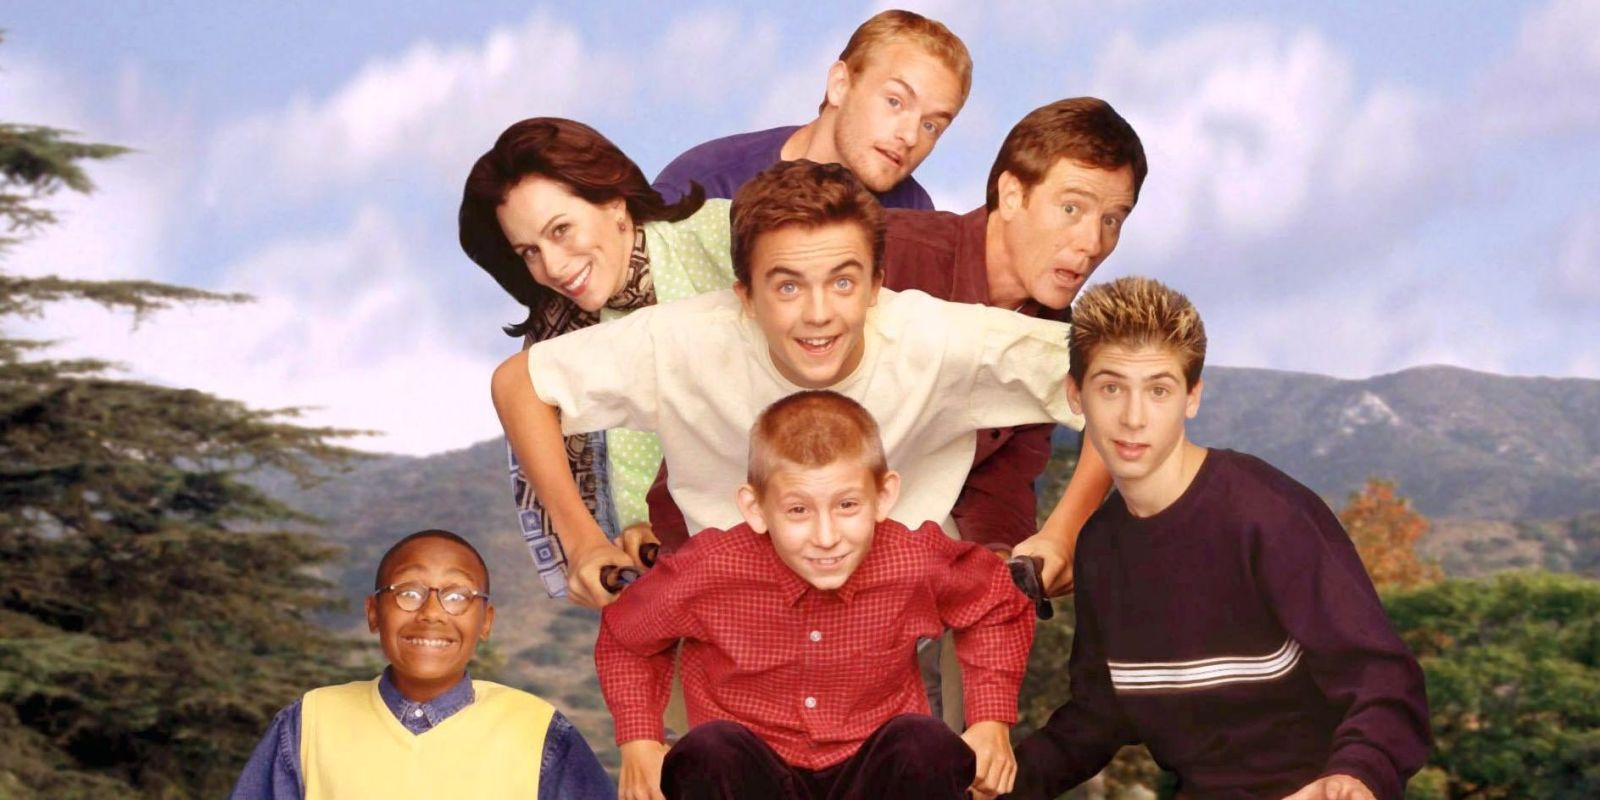 Is Frankie Muniz Gay Stunning malcolm in the middle: what do they look like now? frankie muniz